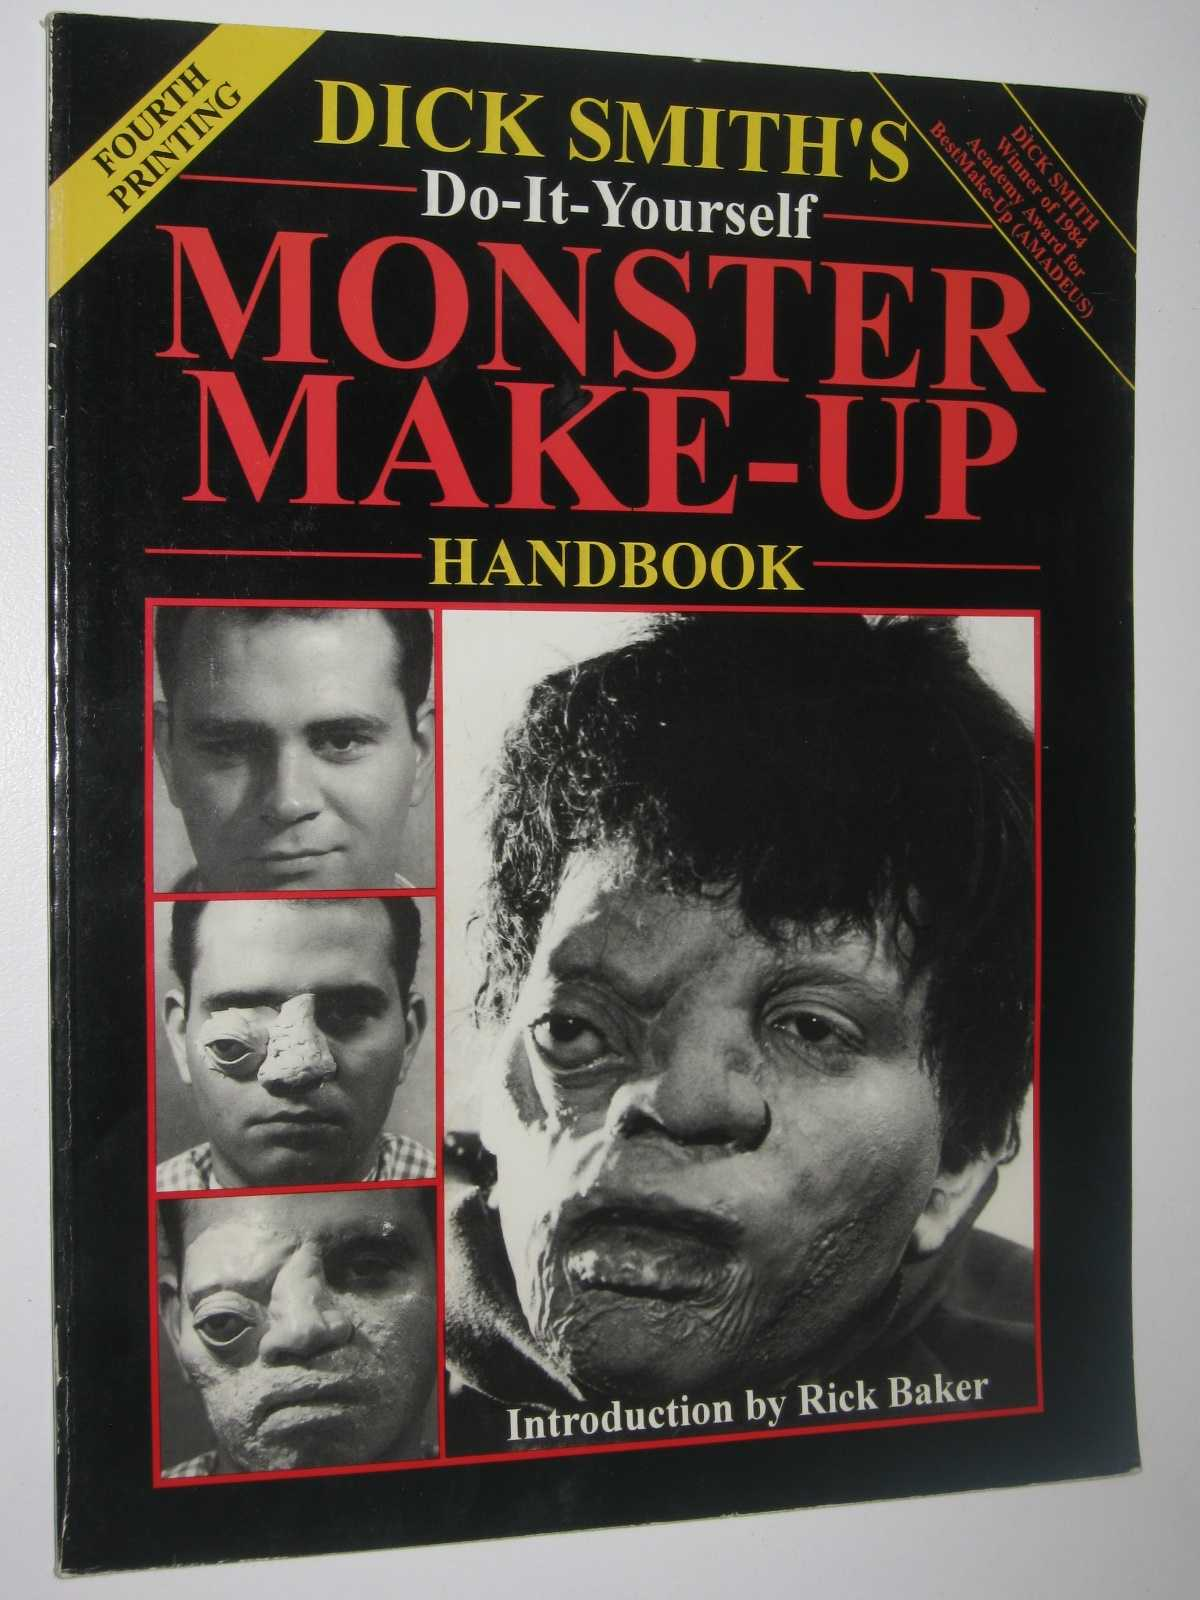 Image for Dick Smith's Do-It-Yourself Monster Make-Up Handbook